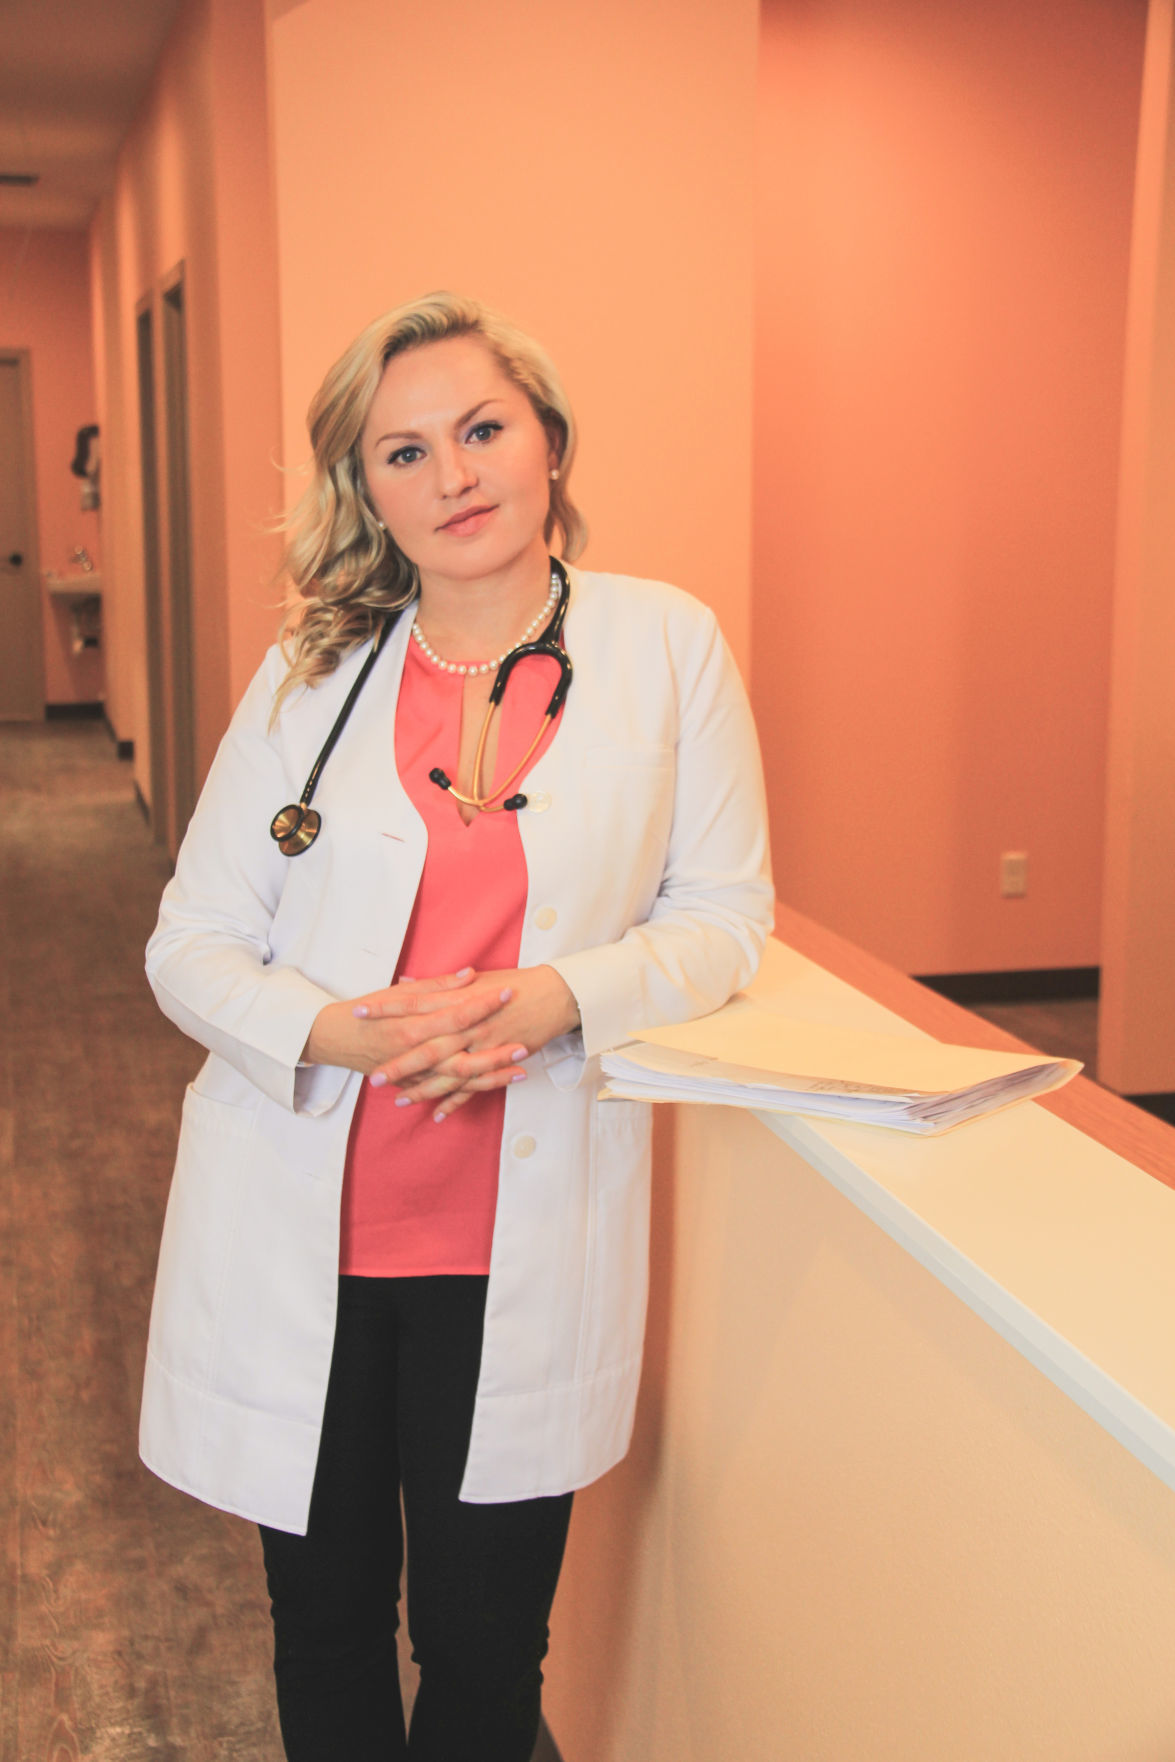 New Ellensburg Family Practice Doctor Emphasizes